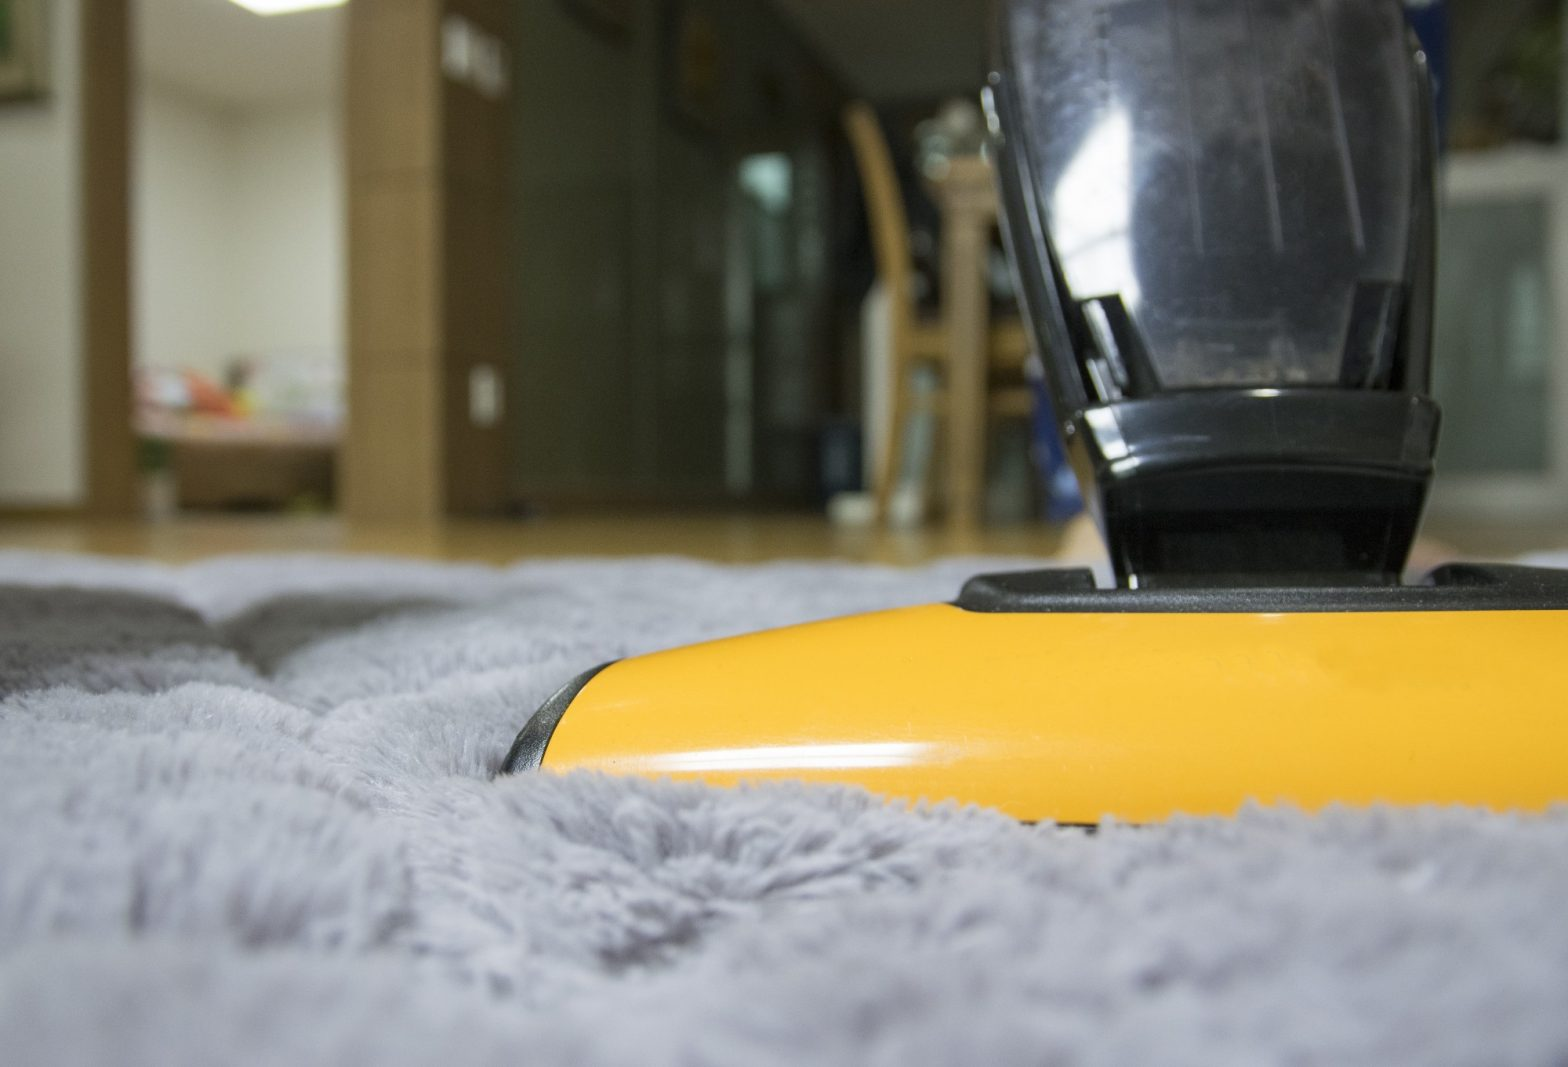 5 Big Benefits of Hiring Professional House Cleaning Services